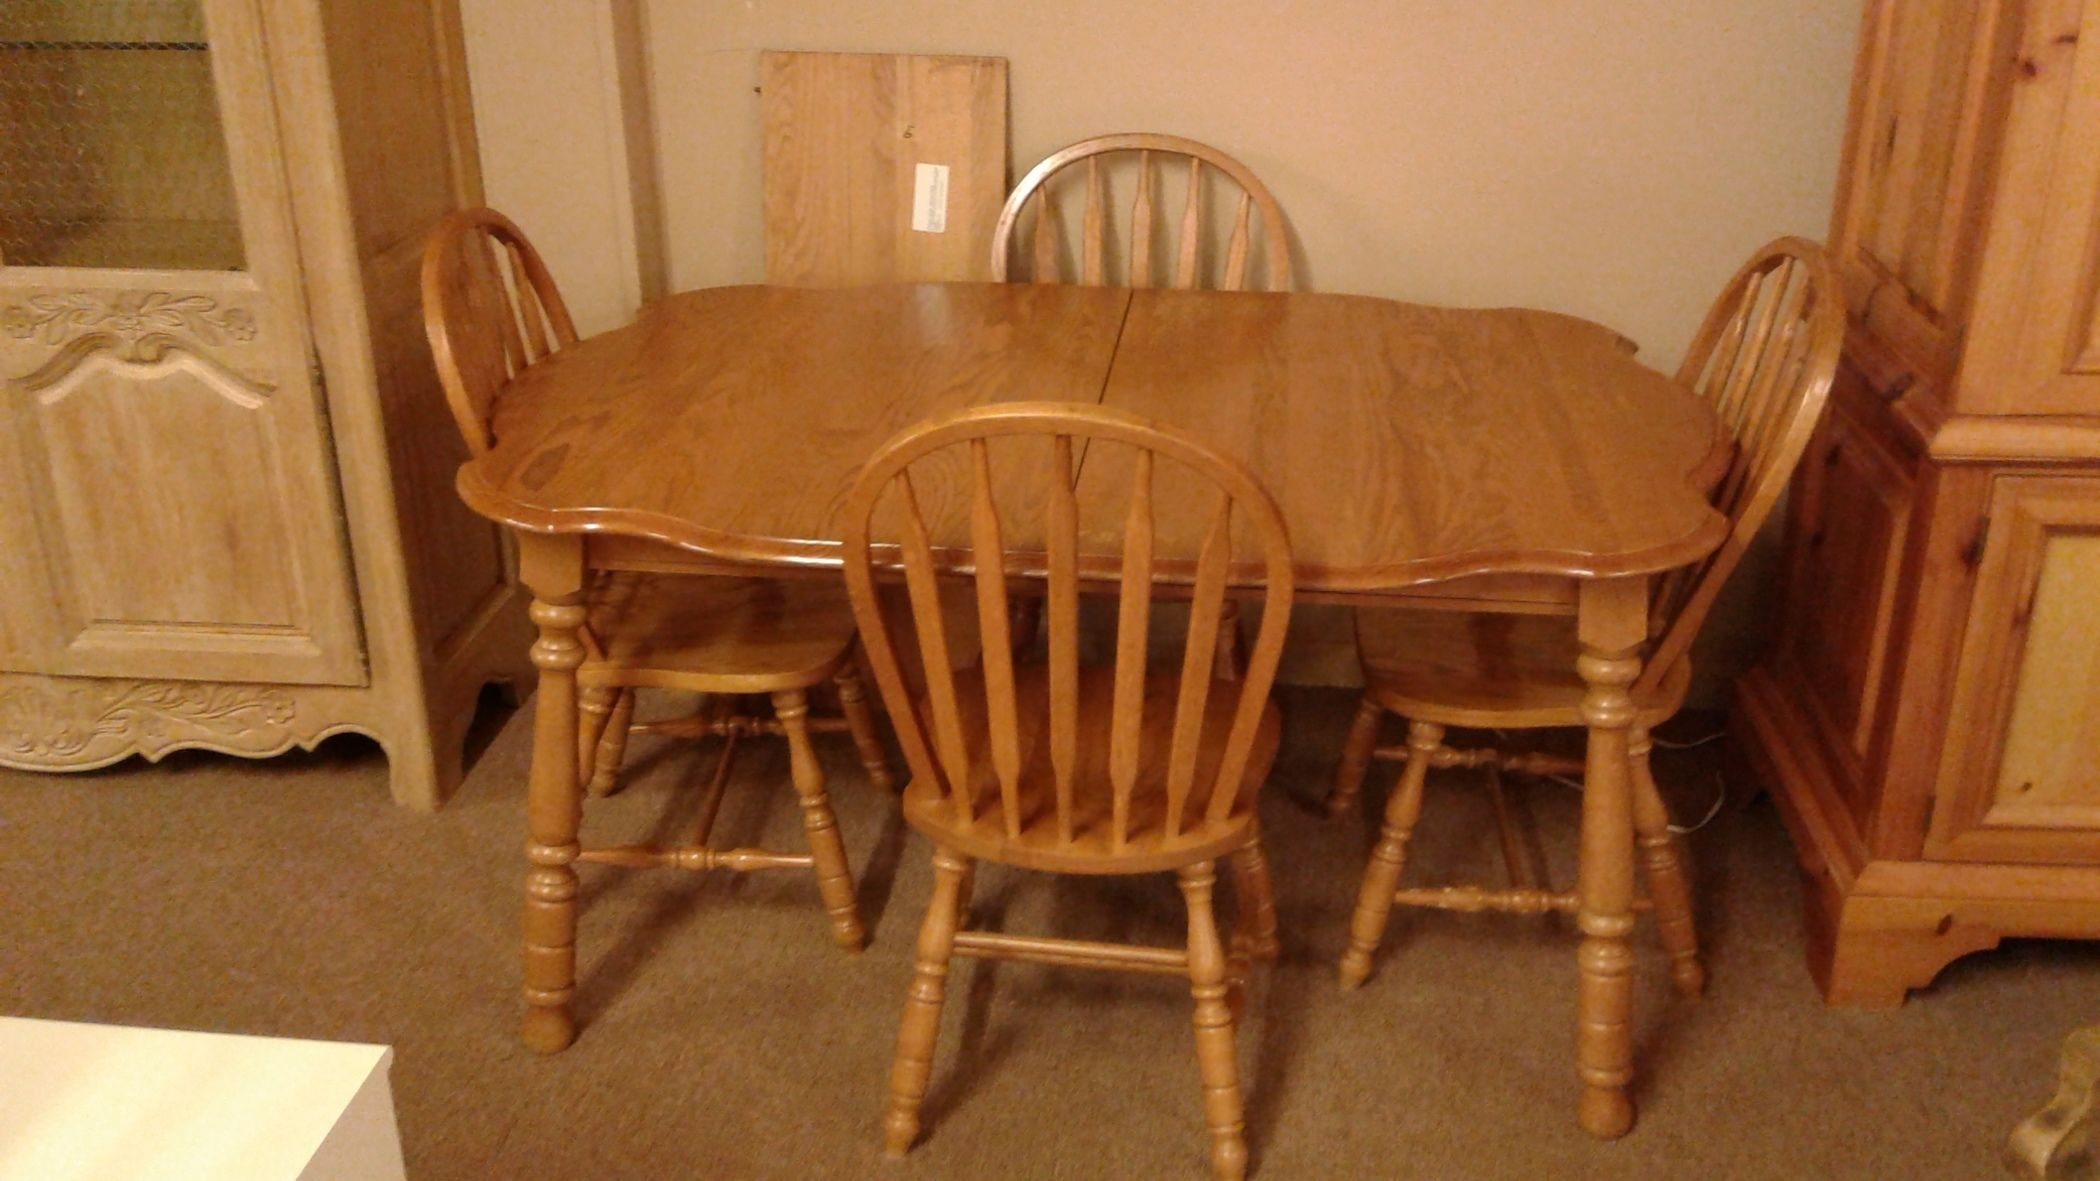 Virginia House Table 4 Chairs Delmarva Furniture Consignment